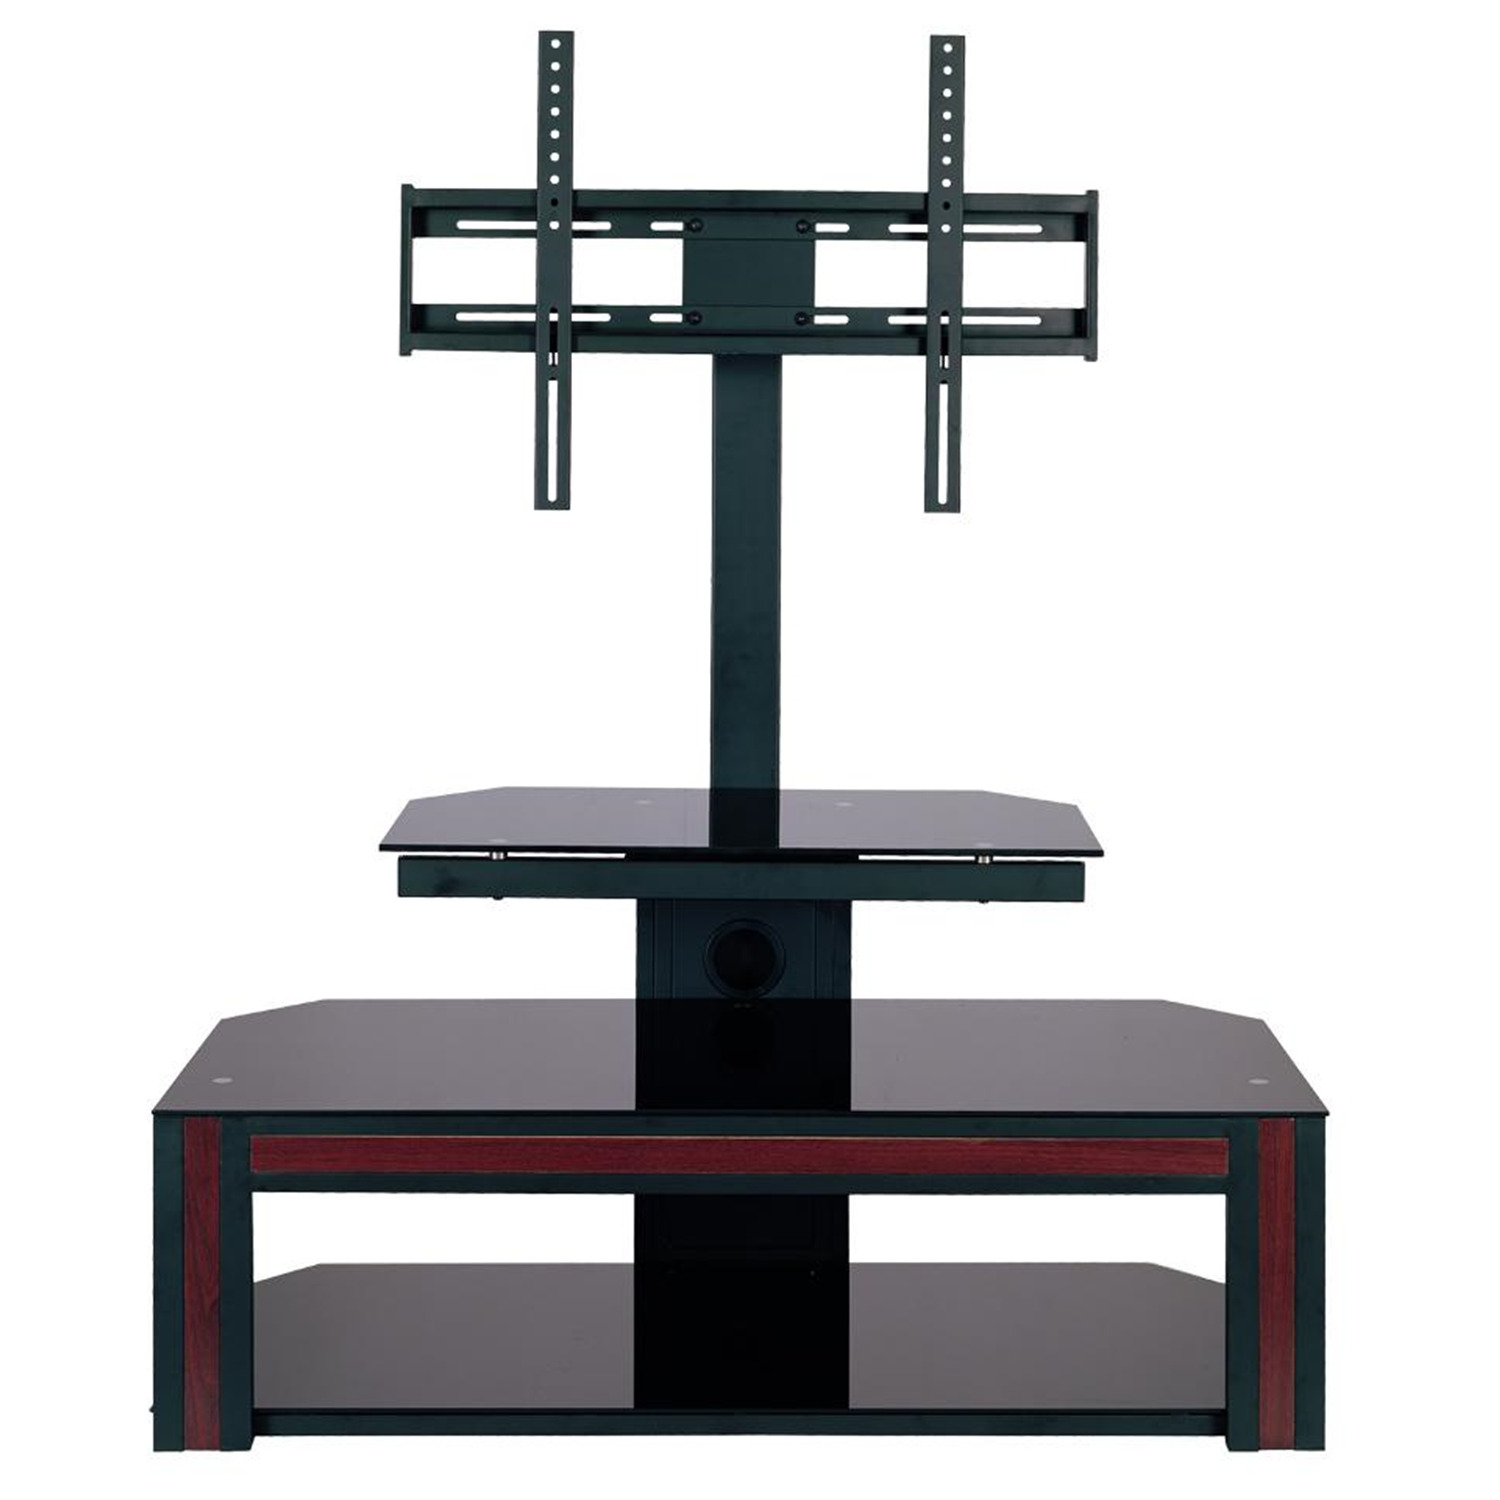 home source tv stand w mount and wood accent by oj commerce tv11207. Black Bedroom Furniture Sets. Home Design Ideas